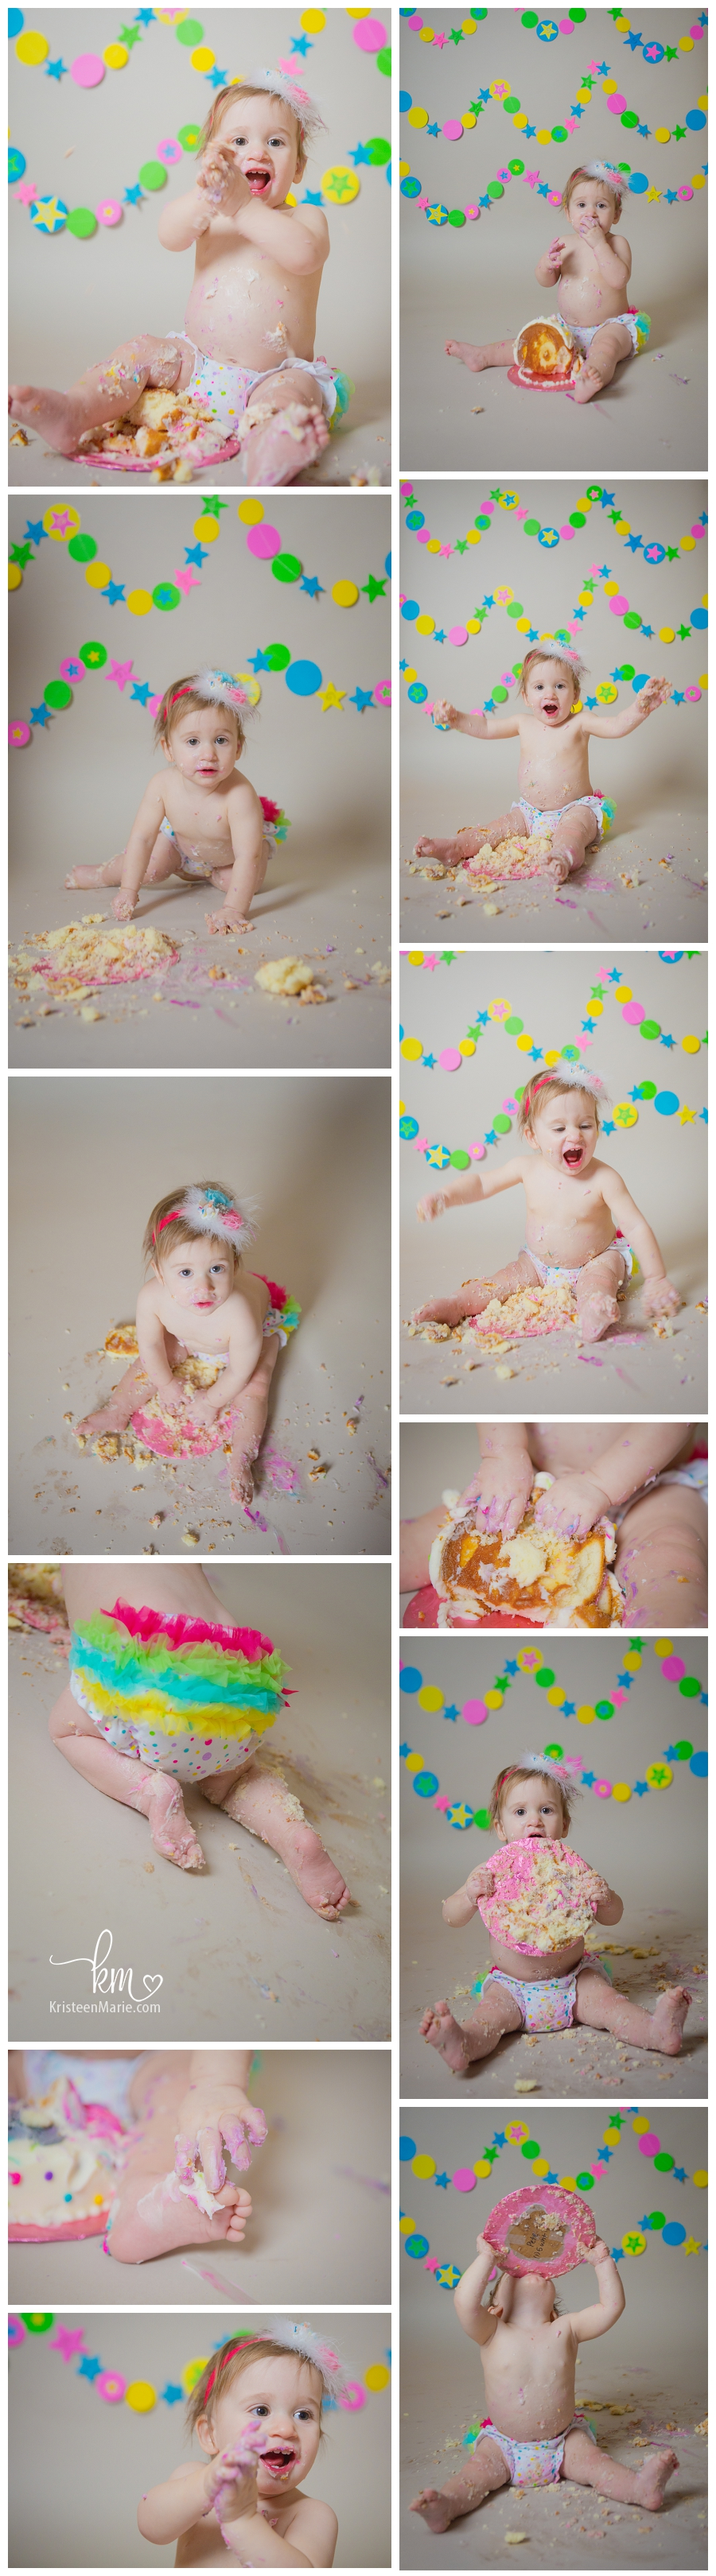 Cake smash session in Westfiled, IN